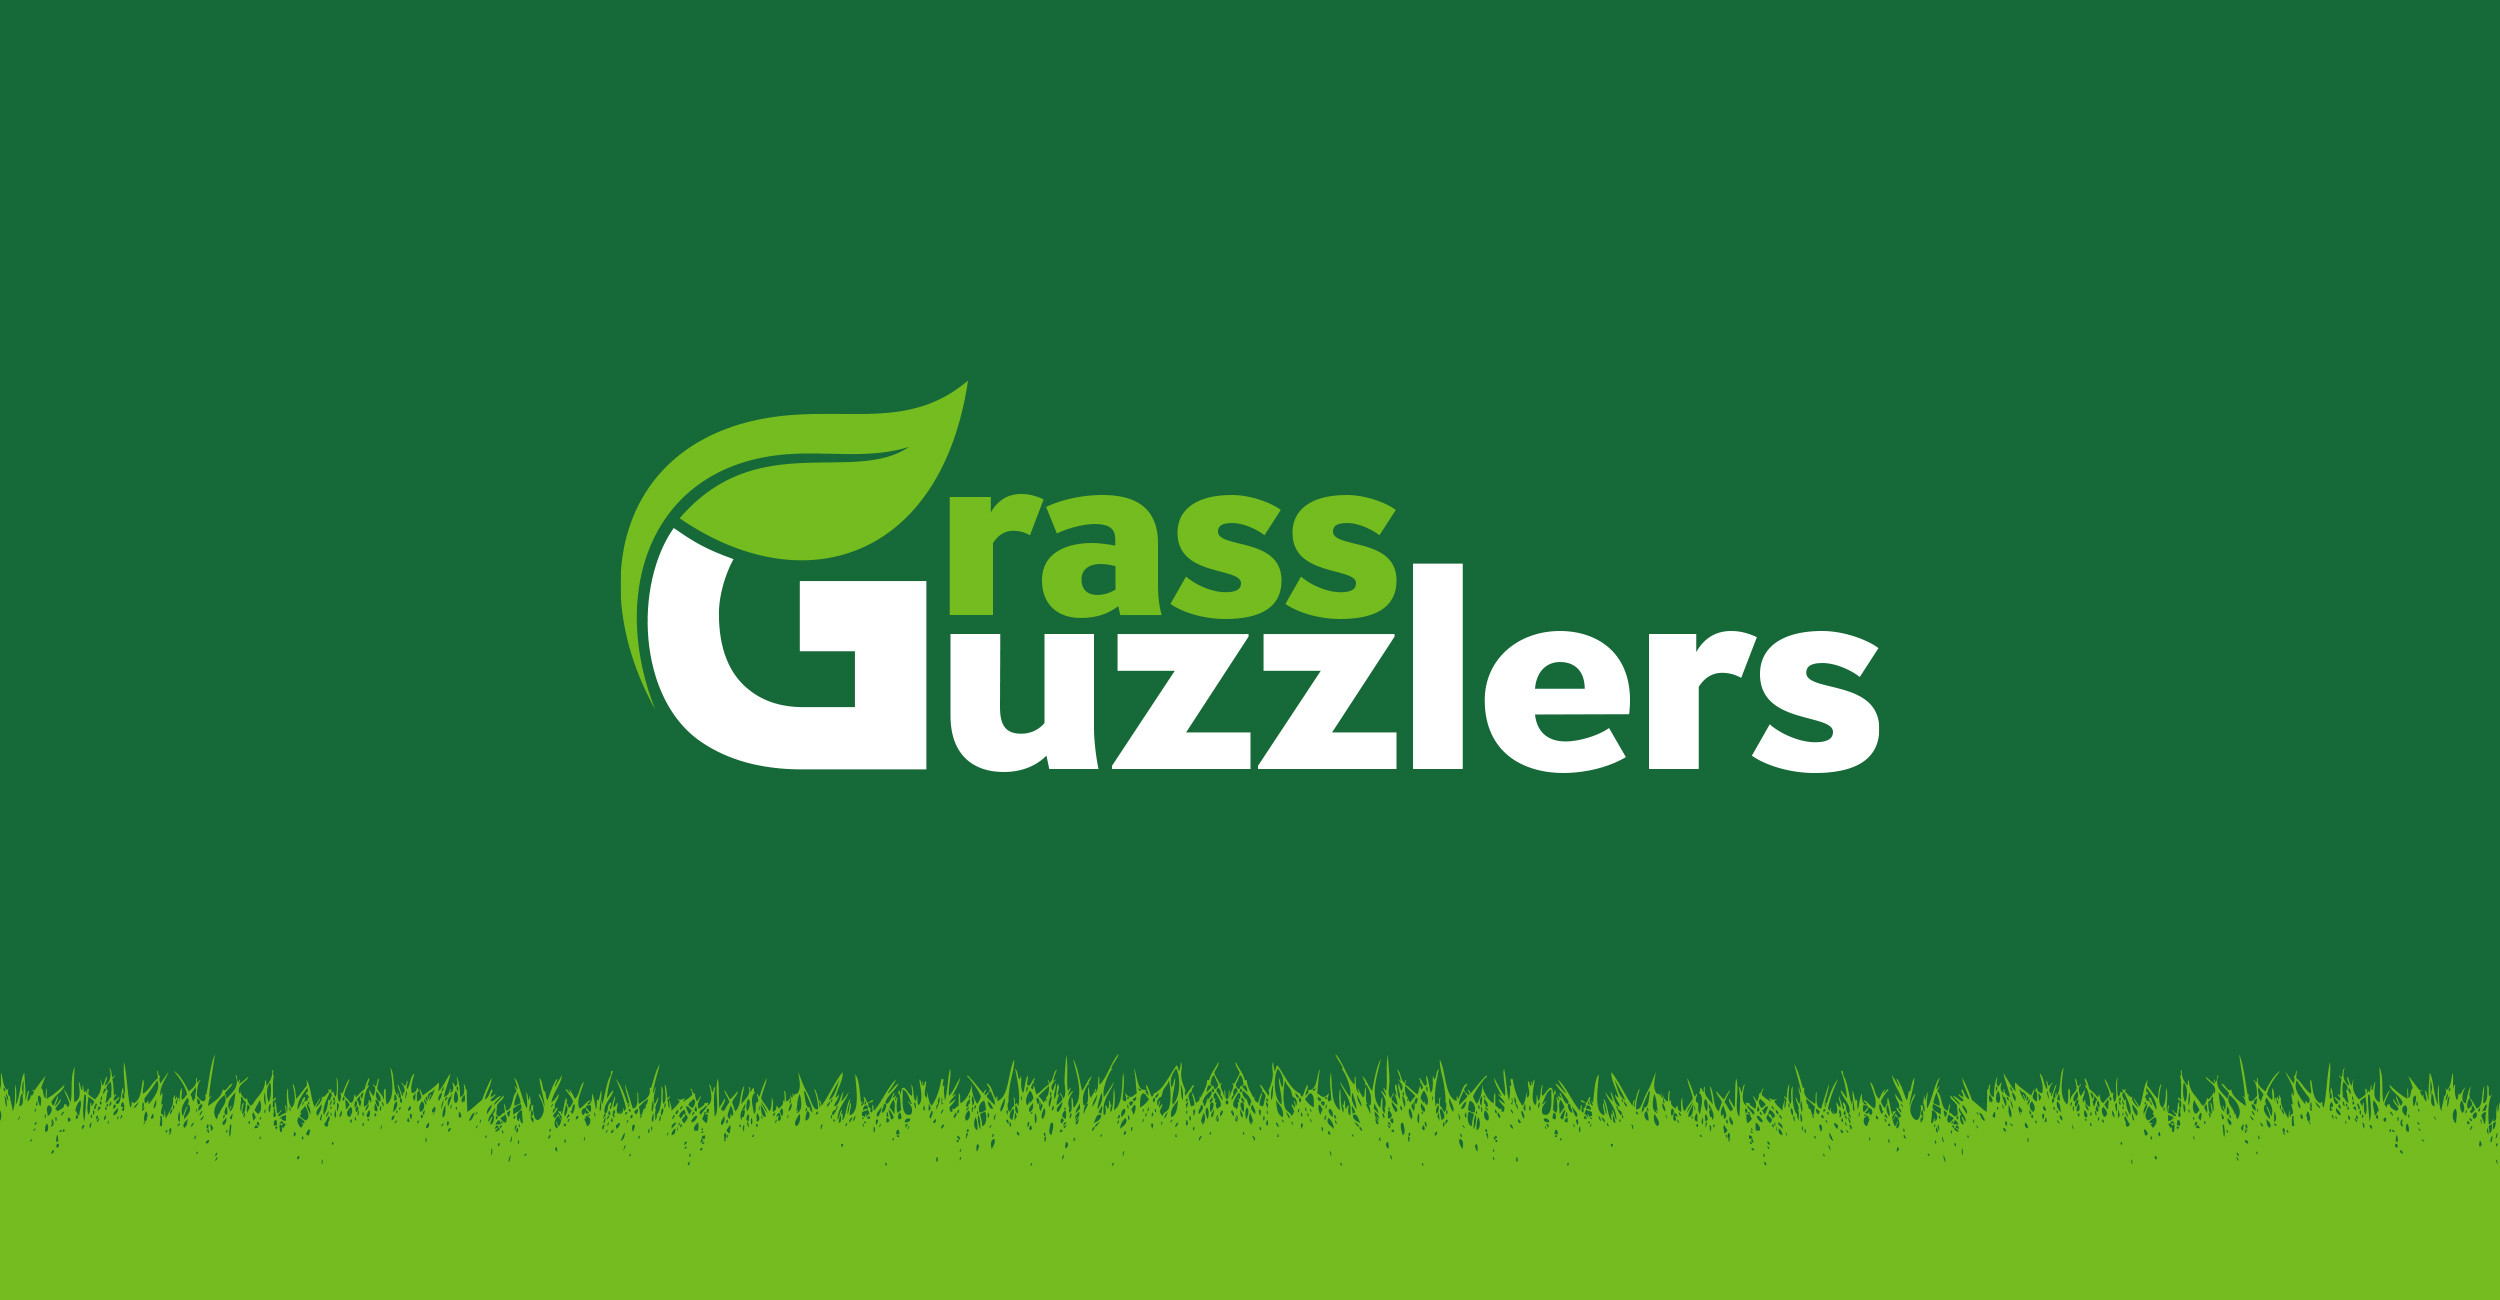 Grass Guzzlers